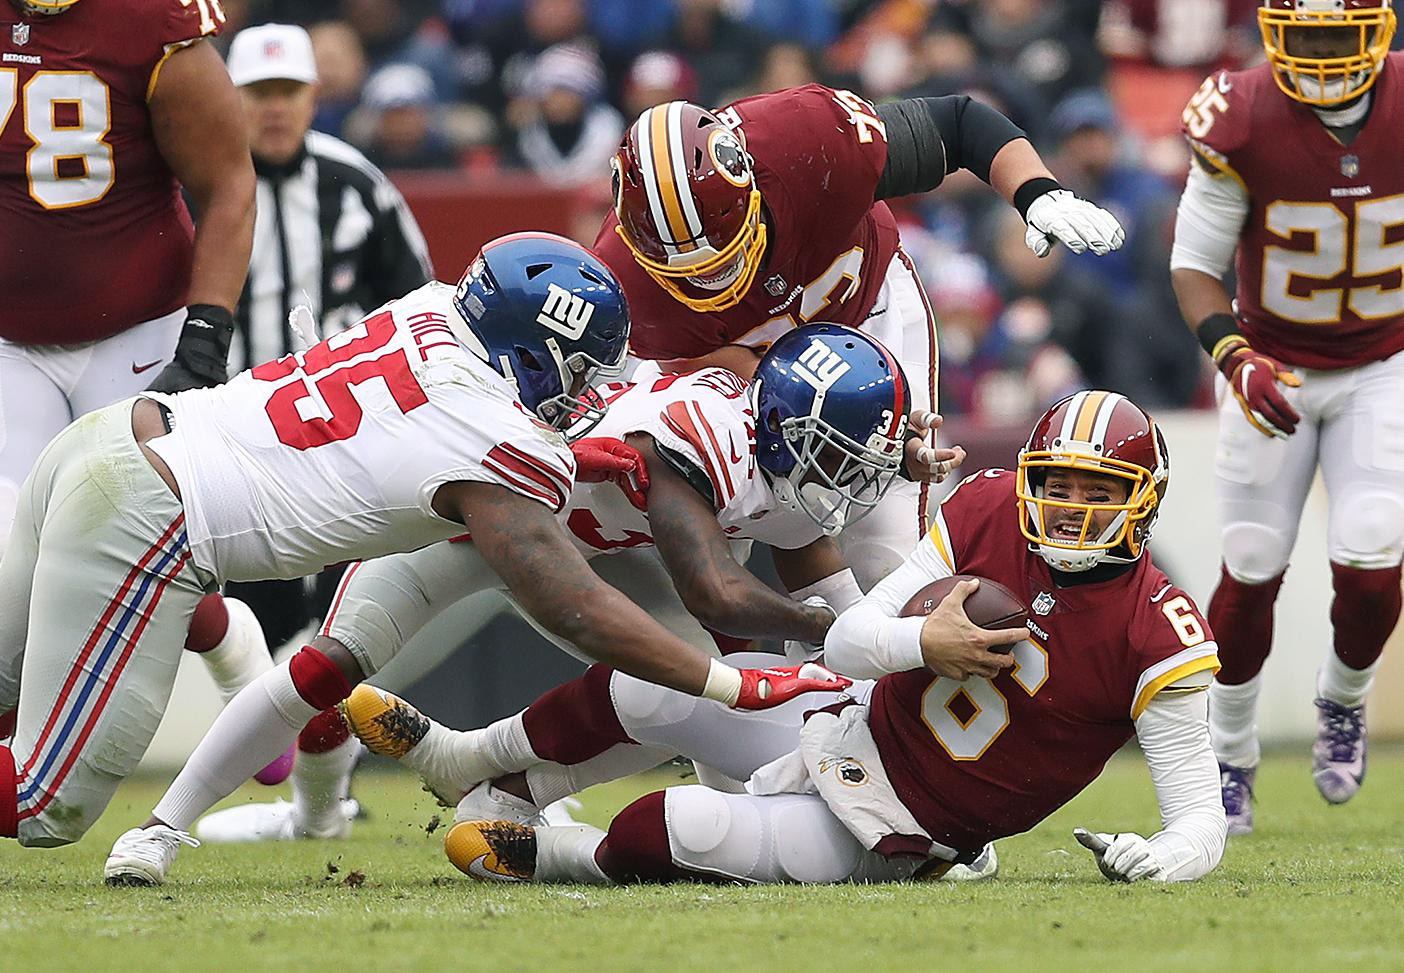 LANDOVER, MD - DECEMBER 09:Quarterback Mark Sanchez #6 of the Washington Redskins is sacked by defensive back Sean Chandler #36 and defensive end B.J. Hill #95 of the New York Giants in the first quarter at FedExField on December 9, 2018 in Landover, Maryland. (Photo by Patrick Smith/Getty Images)